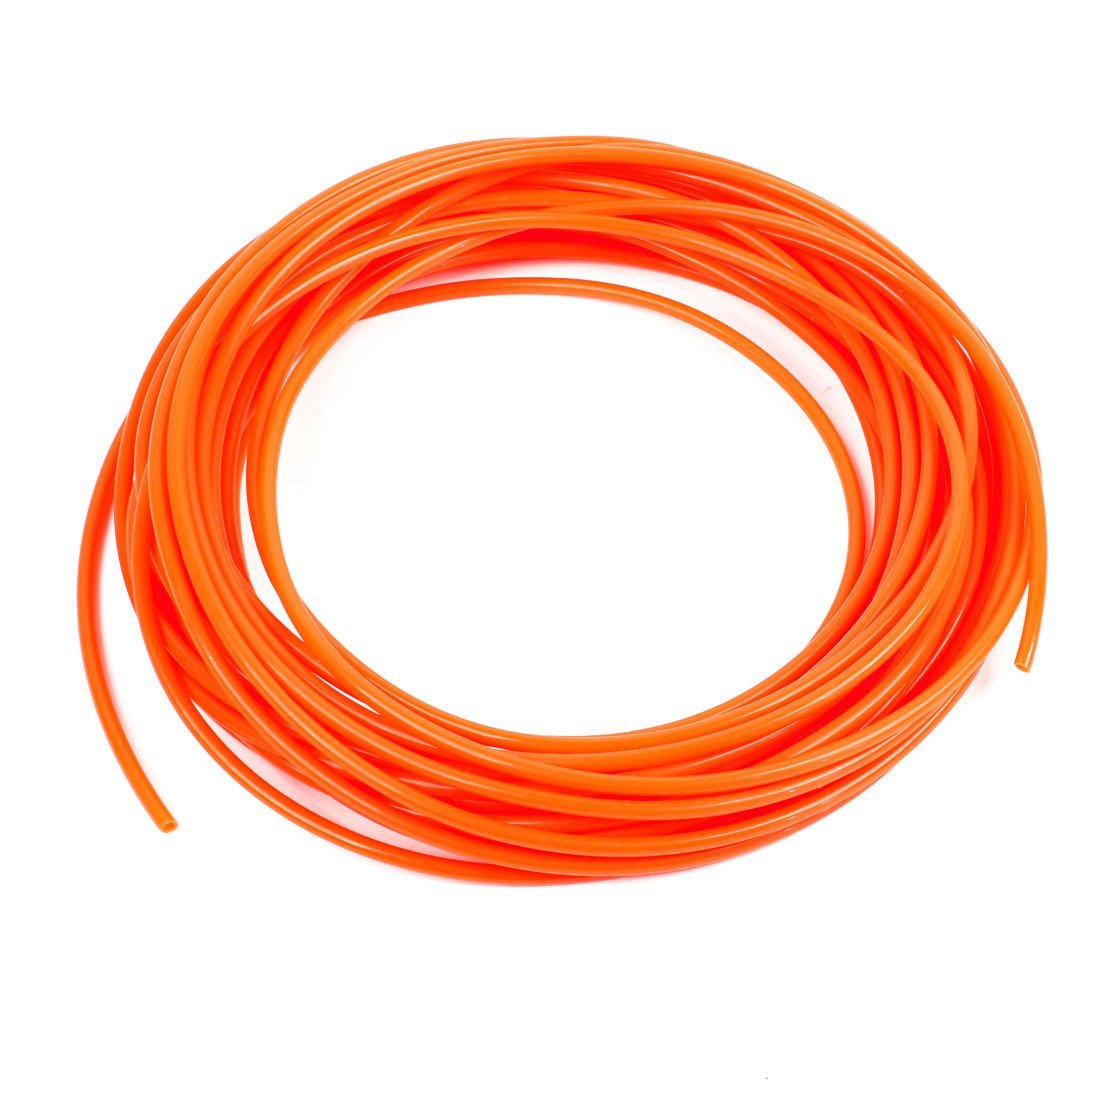 Uxcell a13070300ux0065 Orange 4mm OD 2.5mm ID 15 Meter Pneumatic PU Air Tube Hose